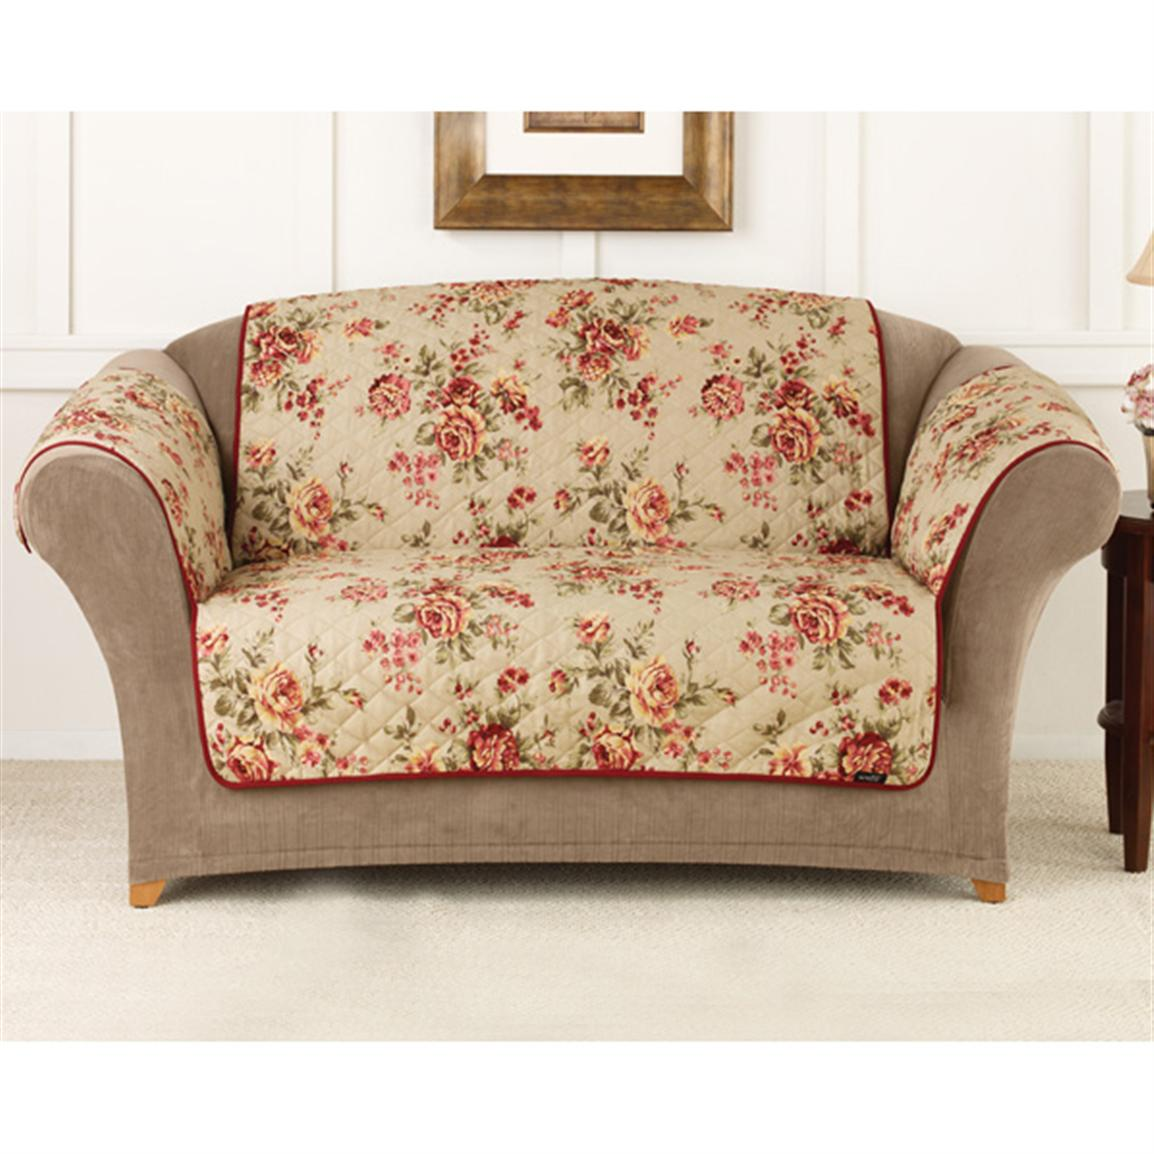 Cover for sofa home furniture design for Divan covers